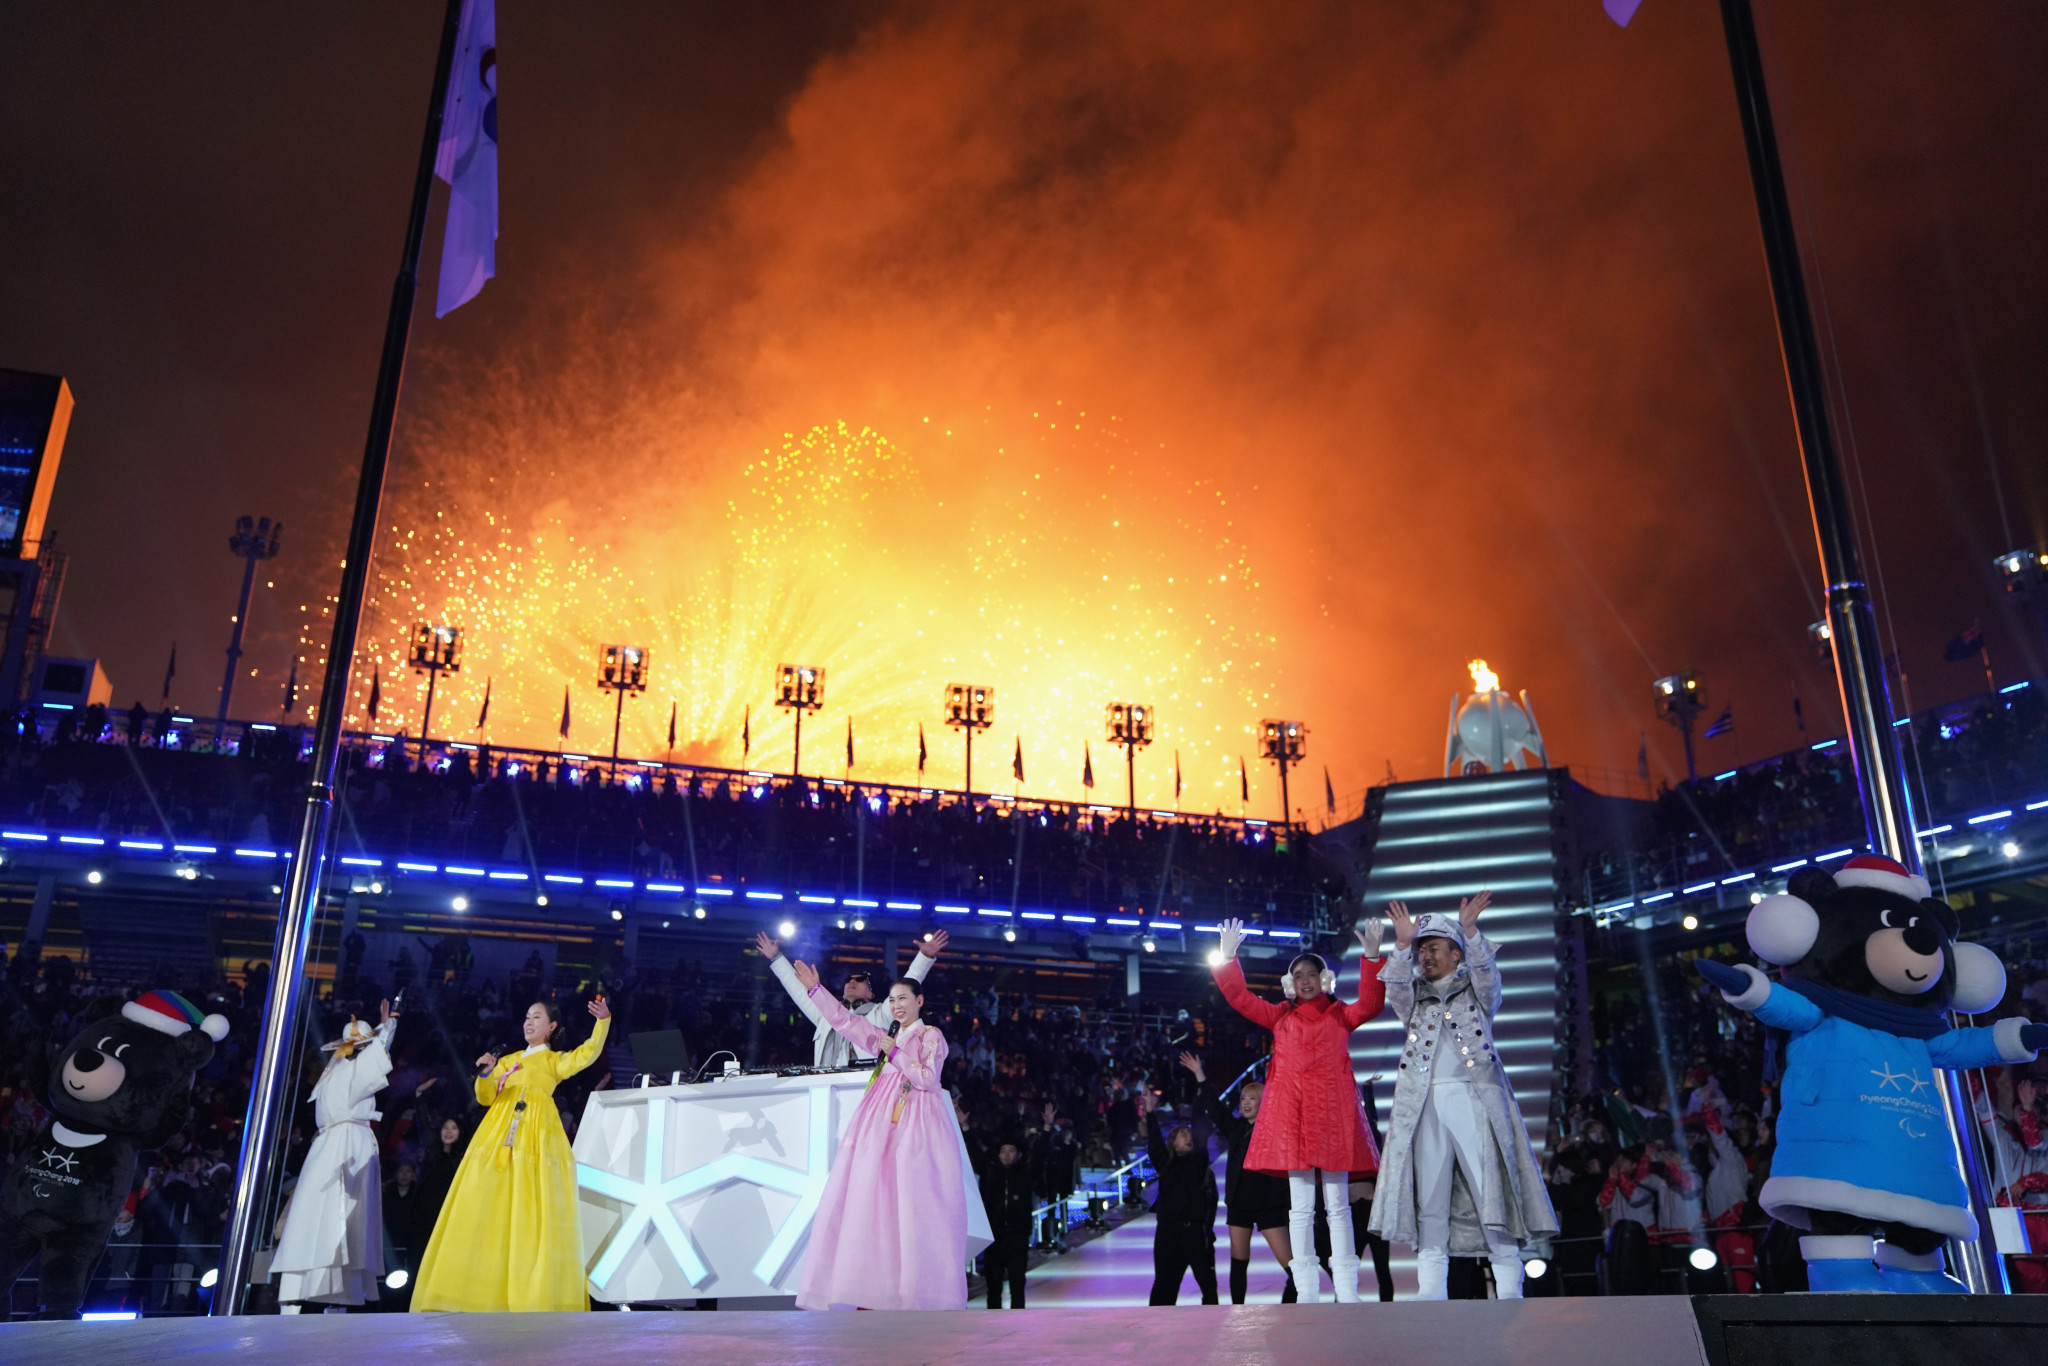 The Opening Ceremony of the Pyeongchang 2018 Winter Paralympics had a crowd of 21,000 ©Getty Images